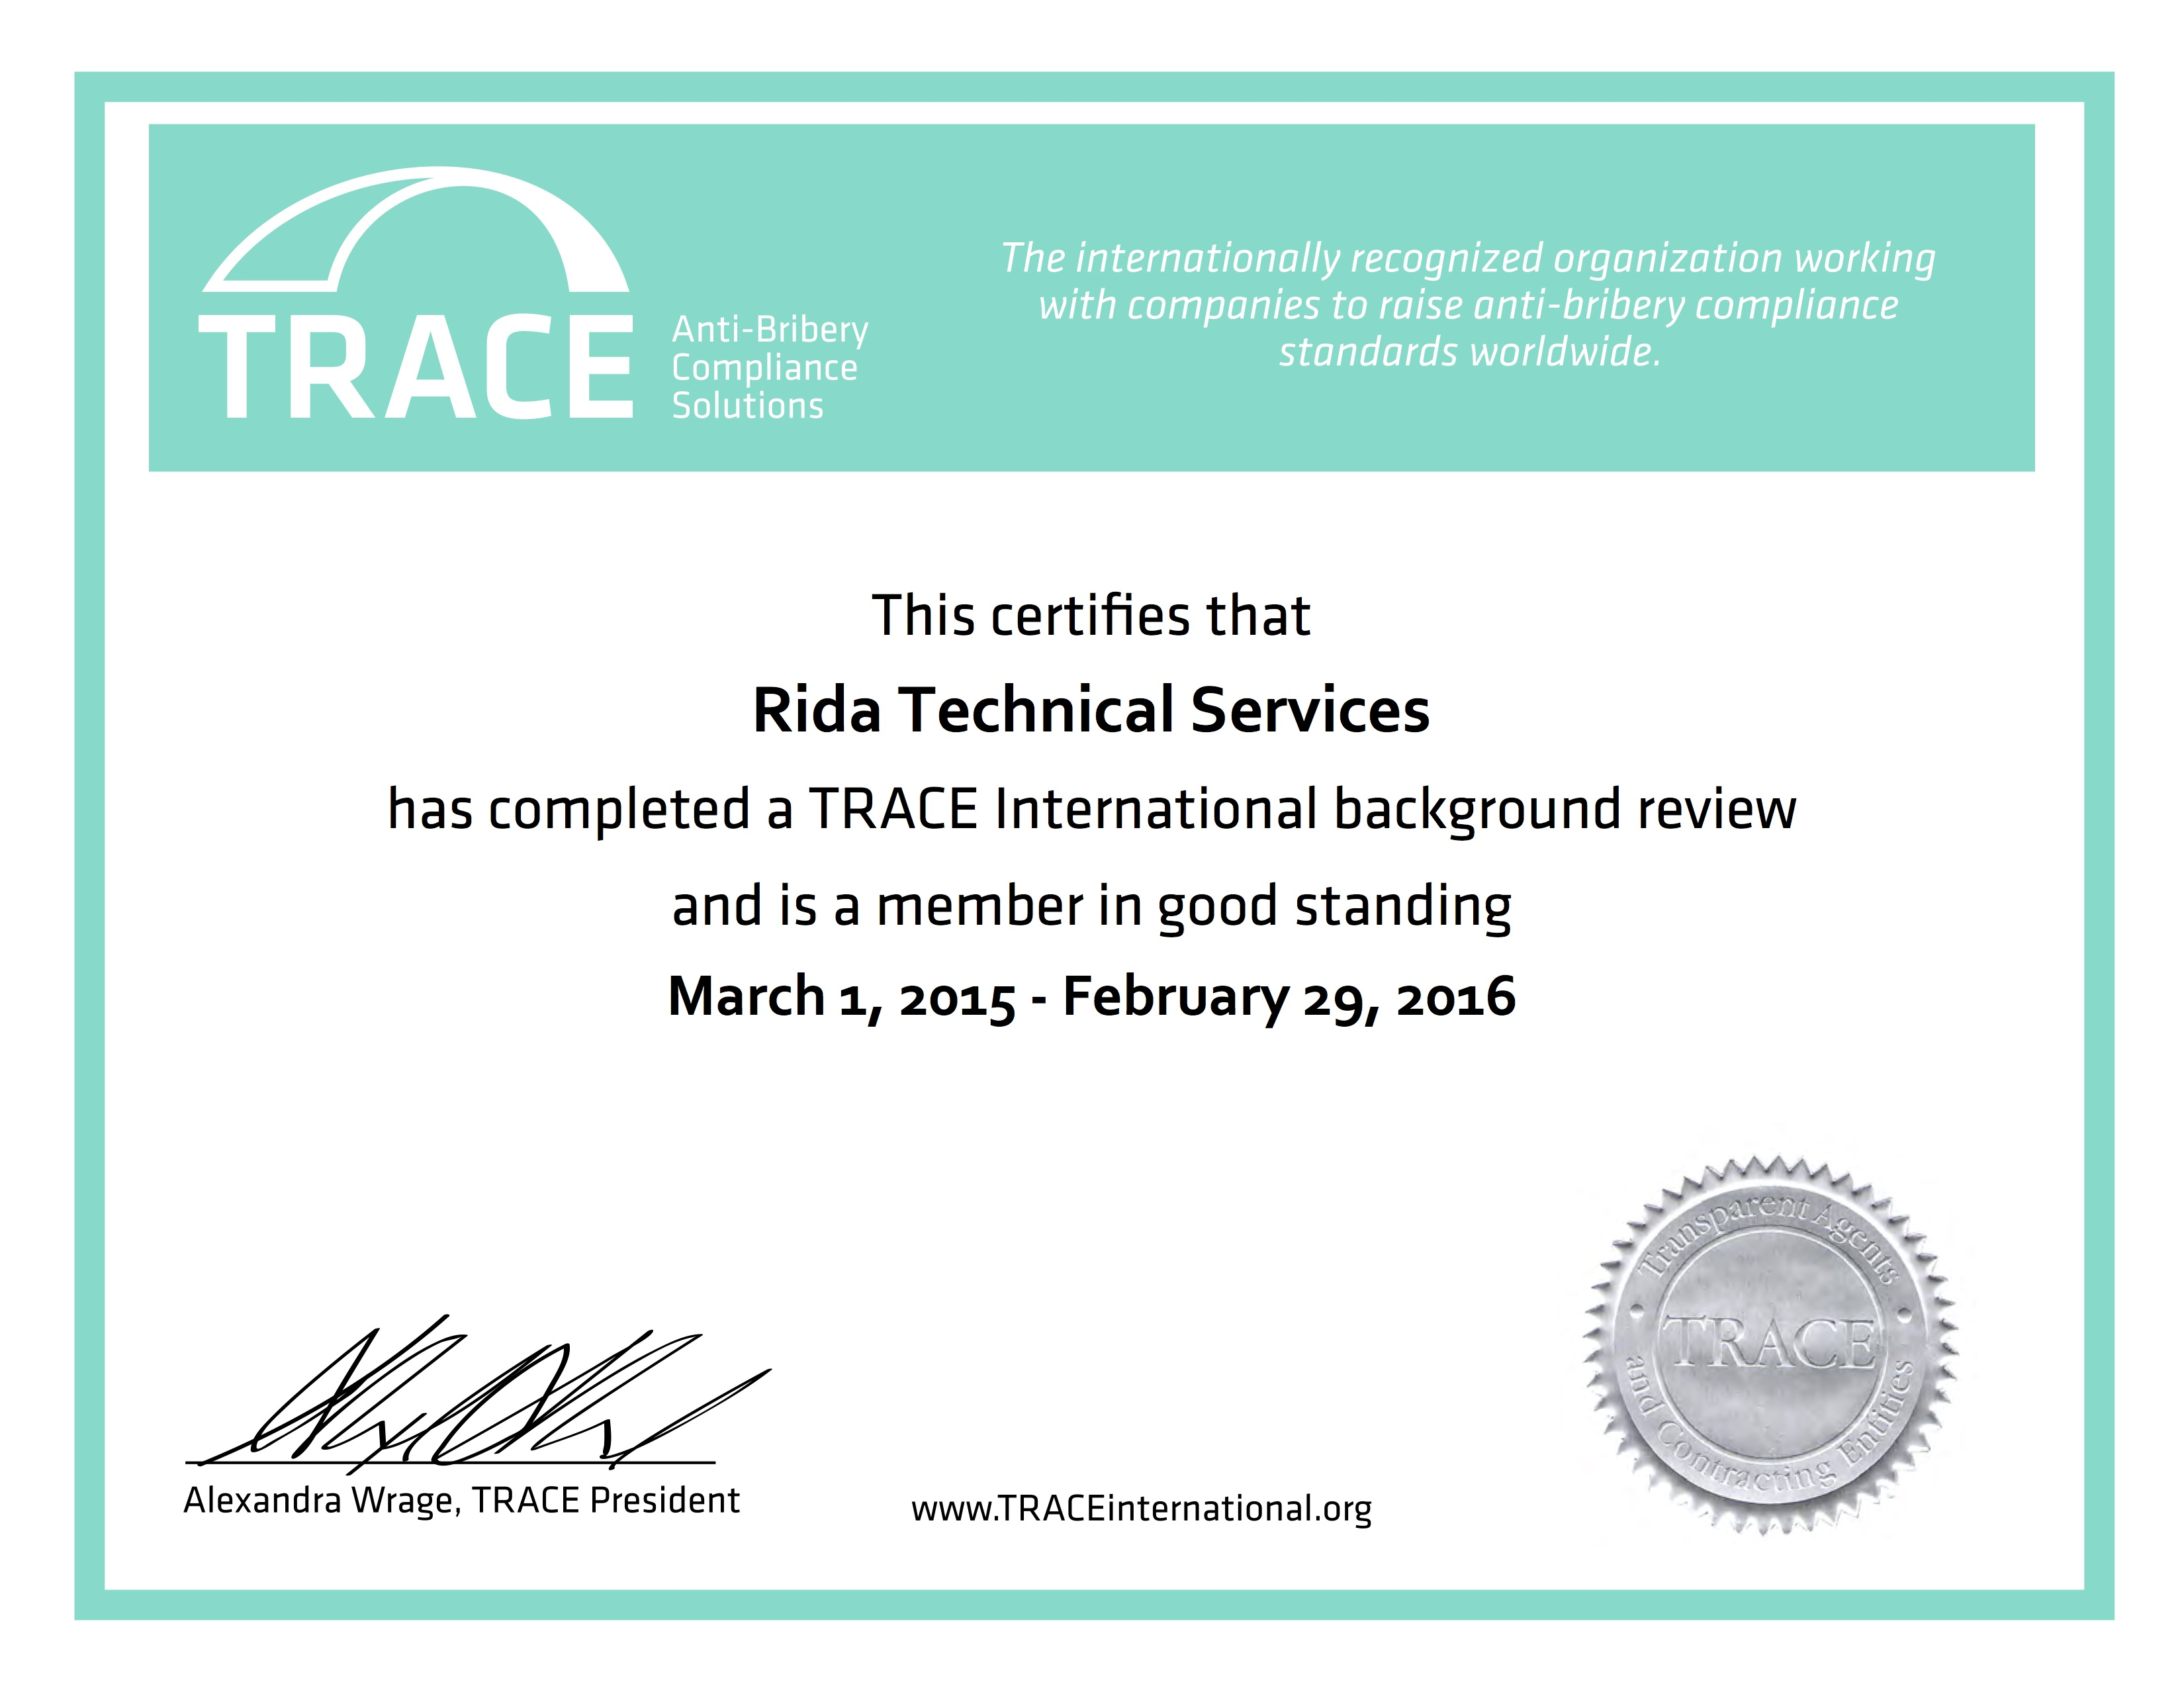 Trace certificate renewal 2015 ridats trace certificate renewal 2015 1betcityfo Gallery